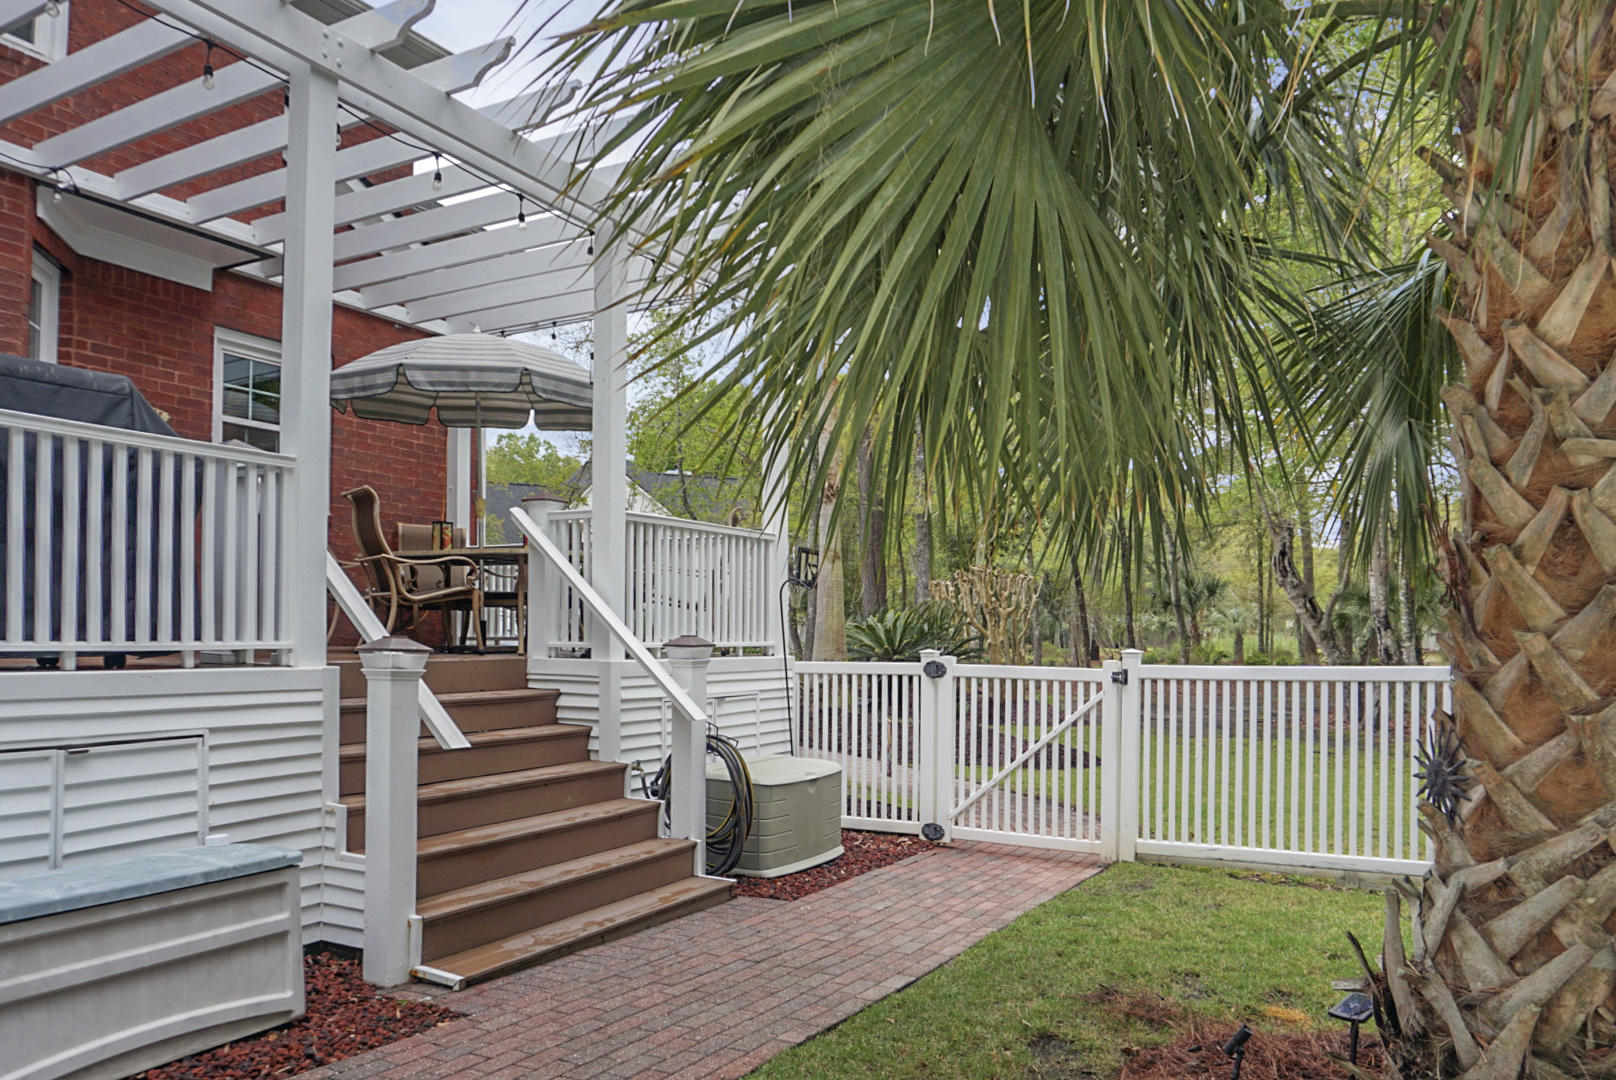 Dunes West Homes For Sale - 2206 Old Jay, Mount Pleasant, SC - 10